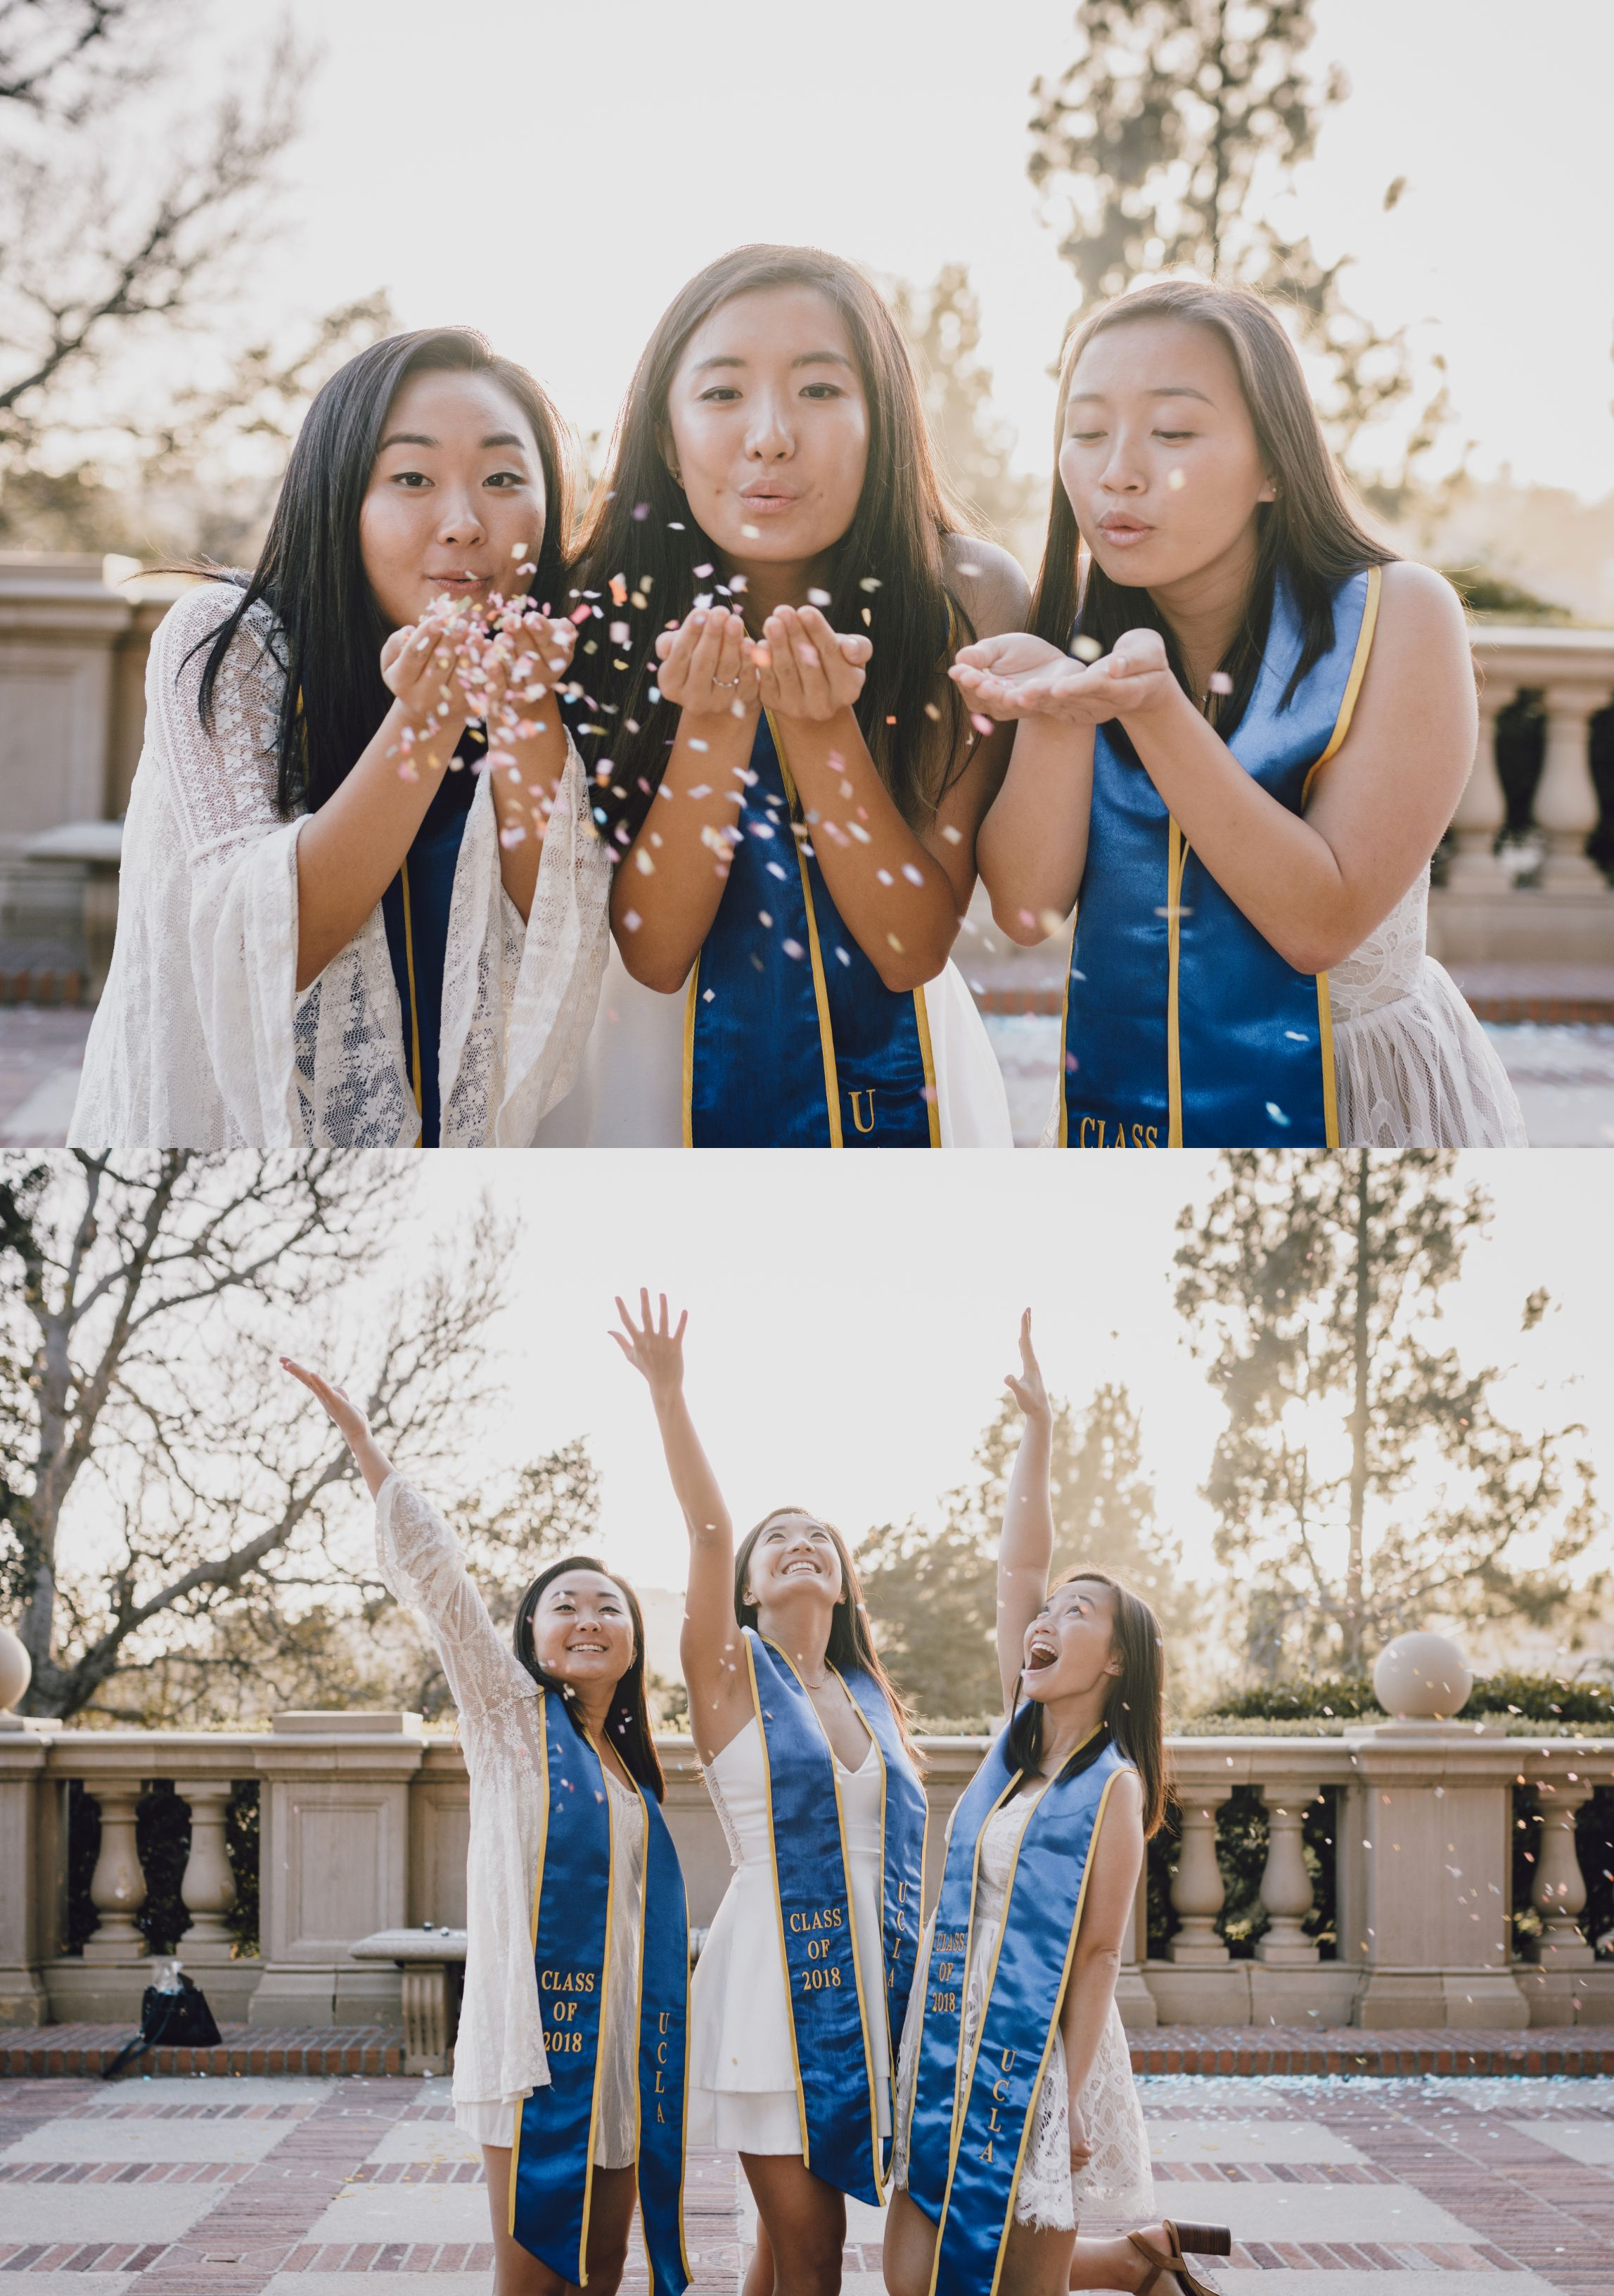 Ucla Graduation Portraits Inspiration Pose Outfit Ideas Los Angeles Californi In 2020 Graduation Portraits Portrait Inspiration Southern California Photographer